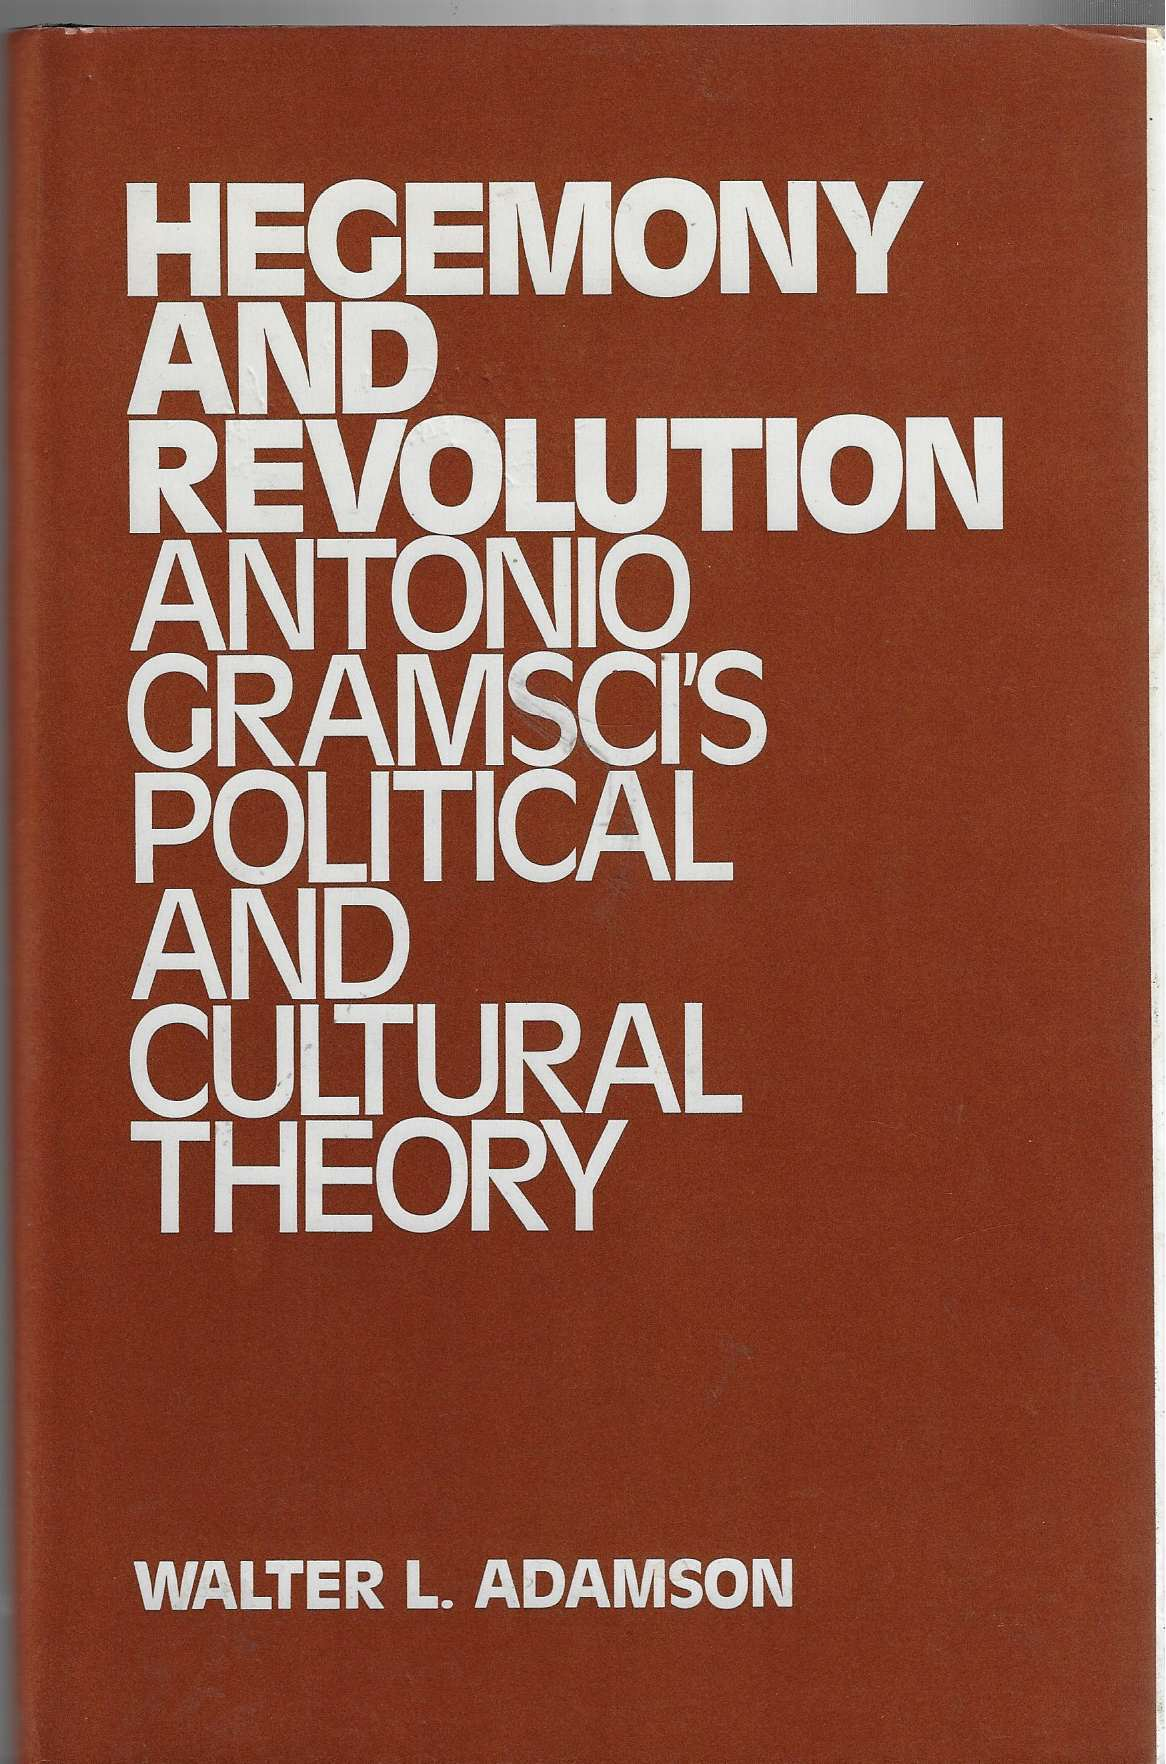 Image for Hegemony and Revolution Antonio Gramsci's Political and Cultural Theory